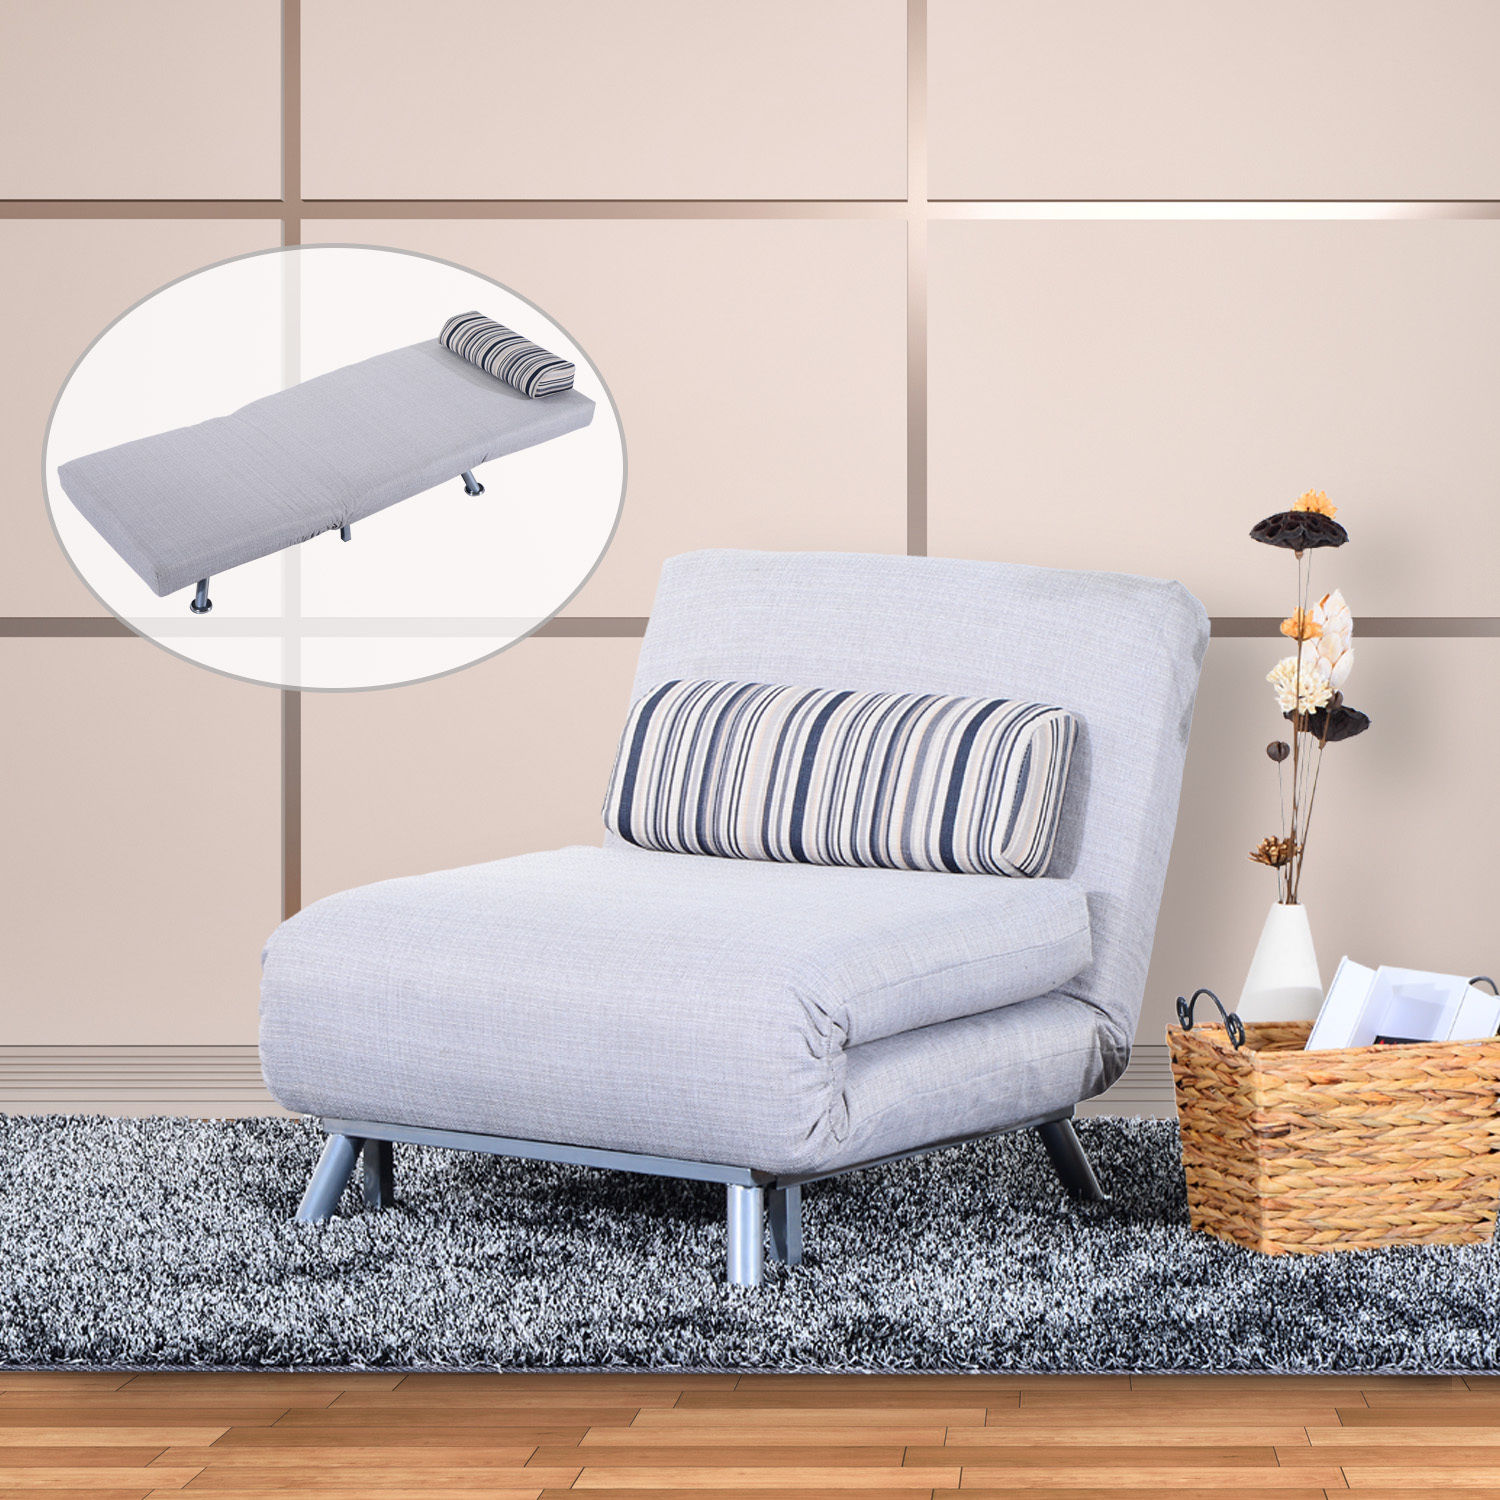 living room lounge chair canada overhead lighting cad 329 99 homcom convertible single sofa bed sleeper recliner fold out couch with 5 adjustable position and pillow grey dorm guest